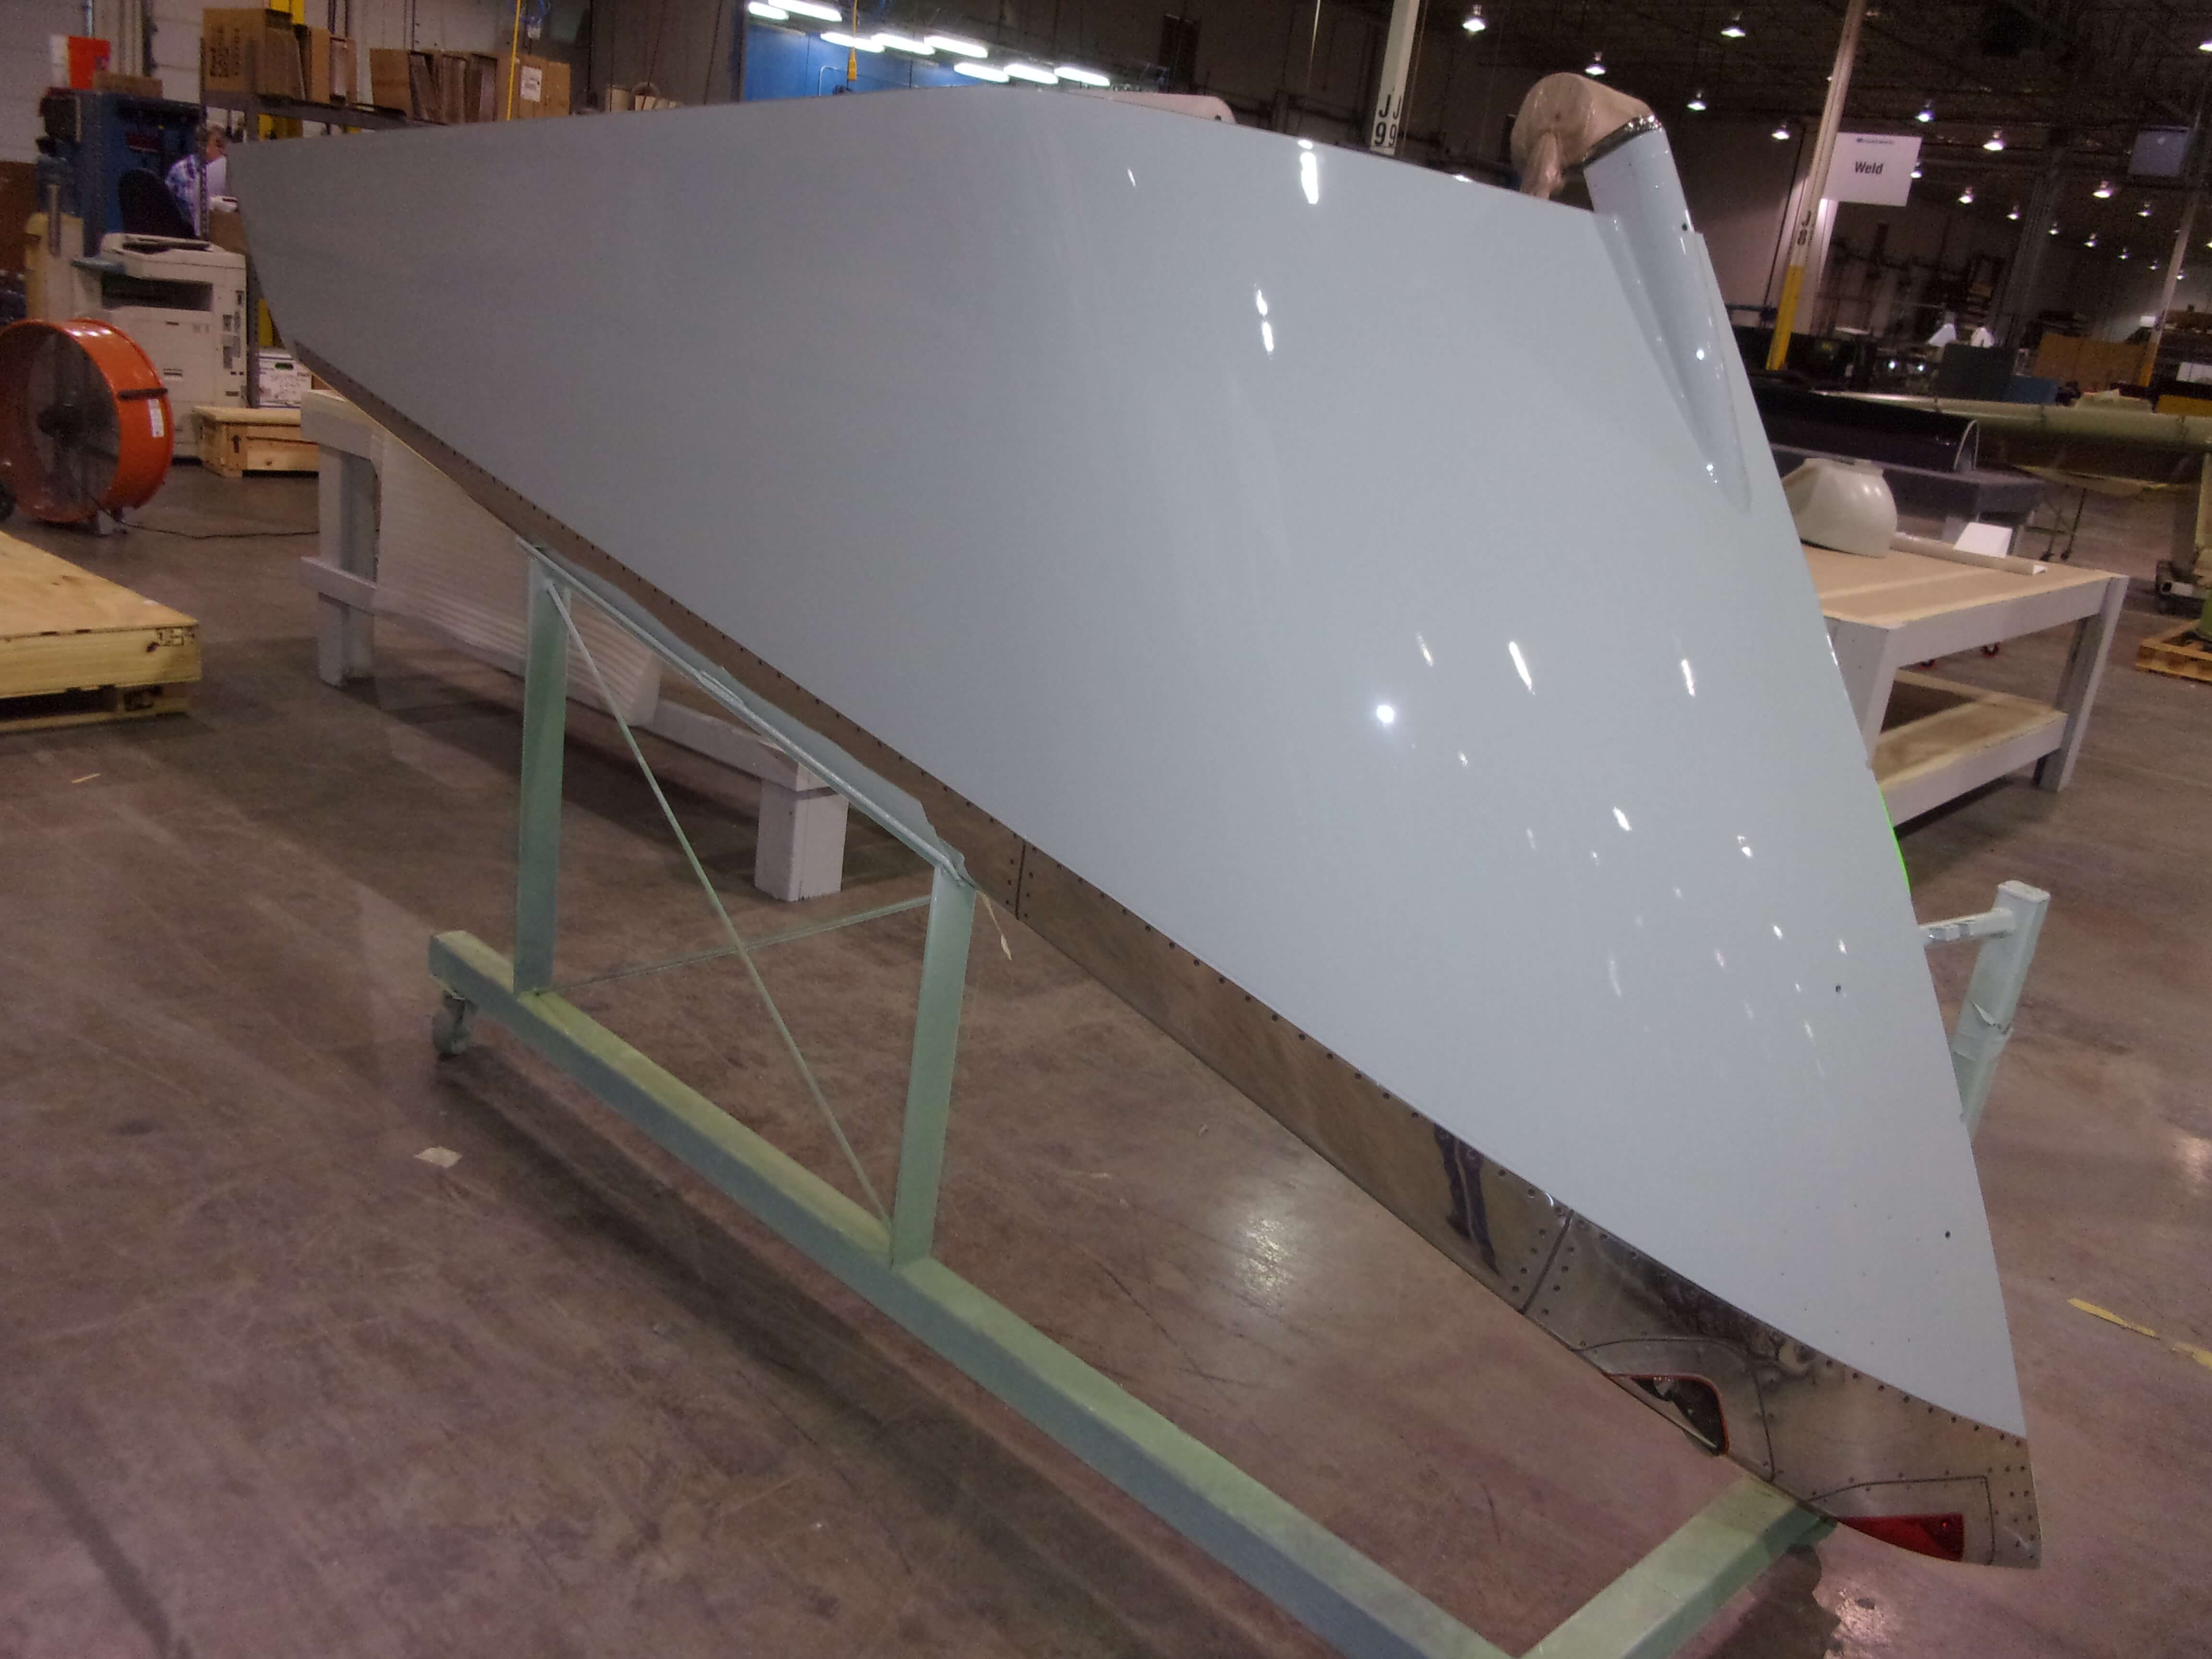 Final inspection picture of a B737 winglet